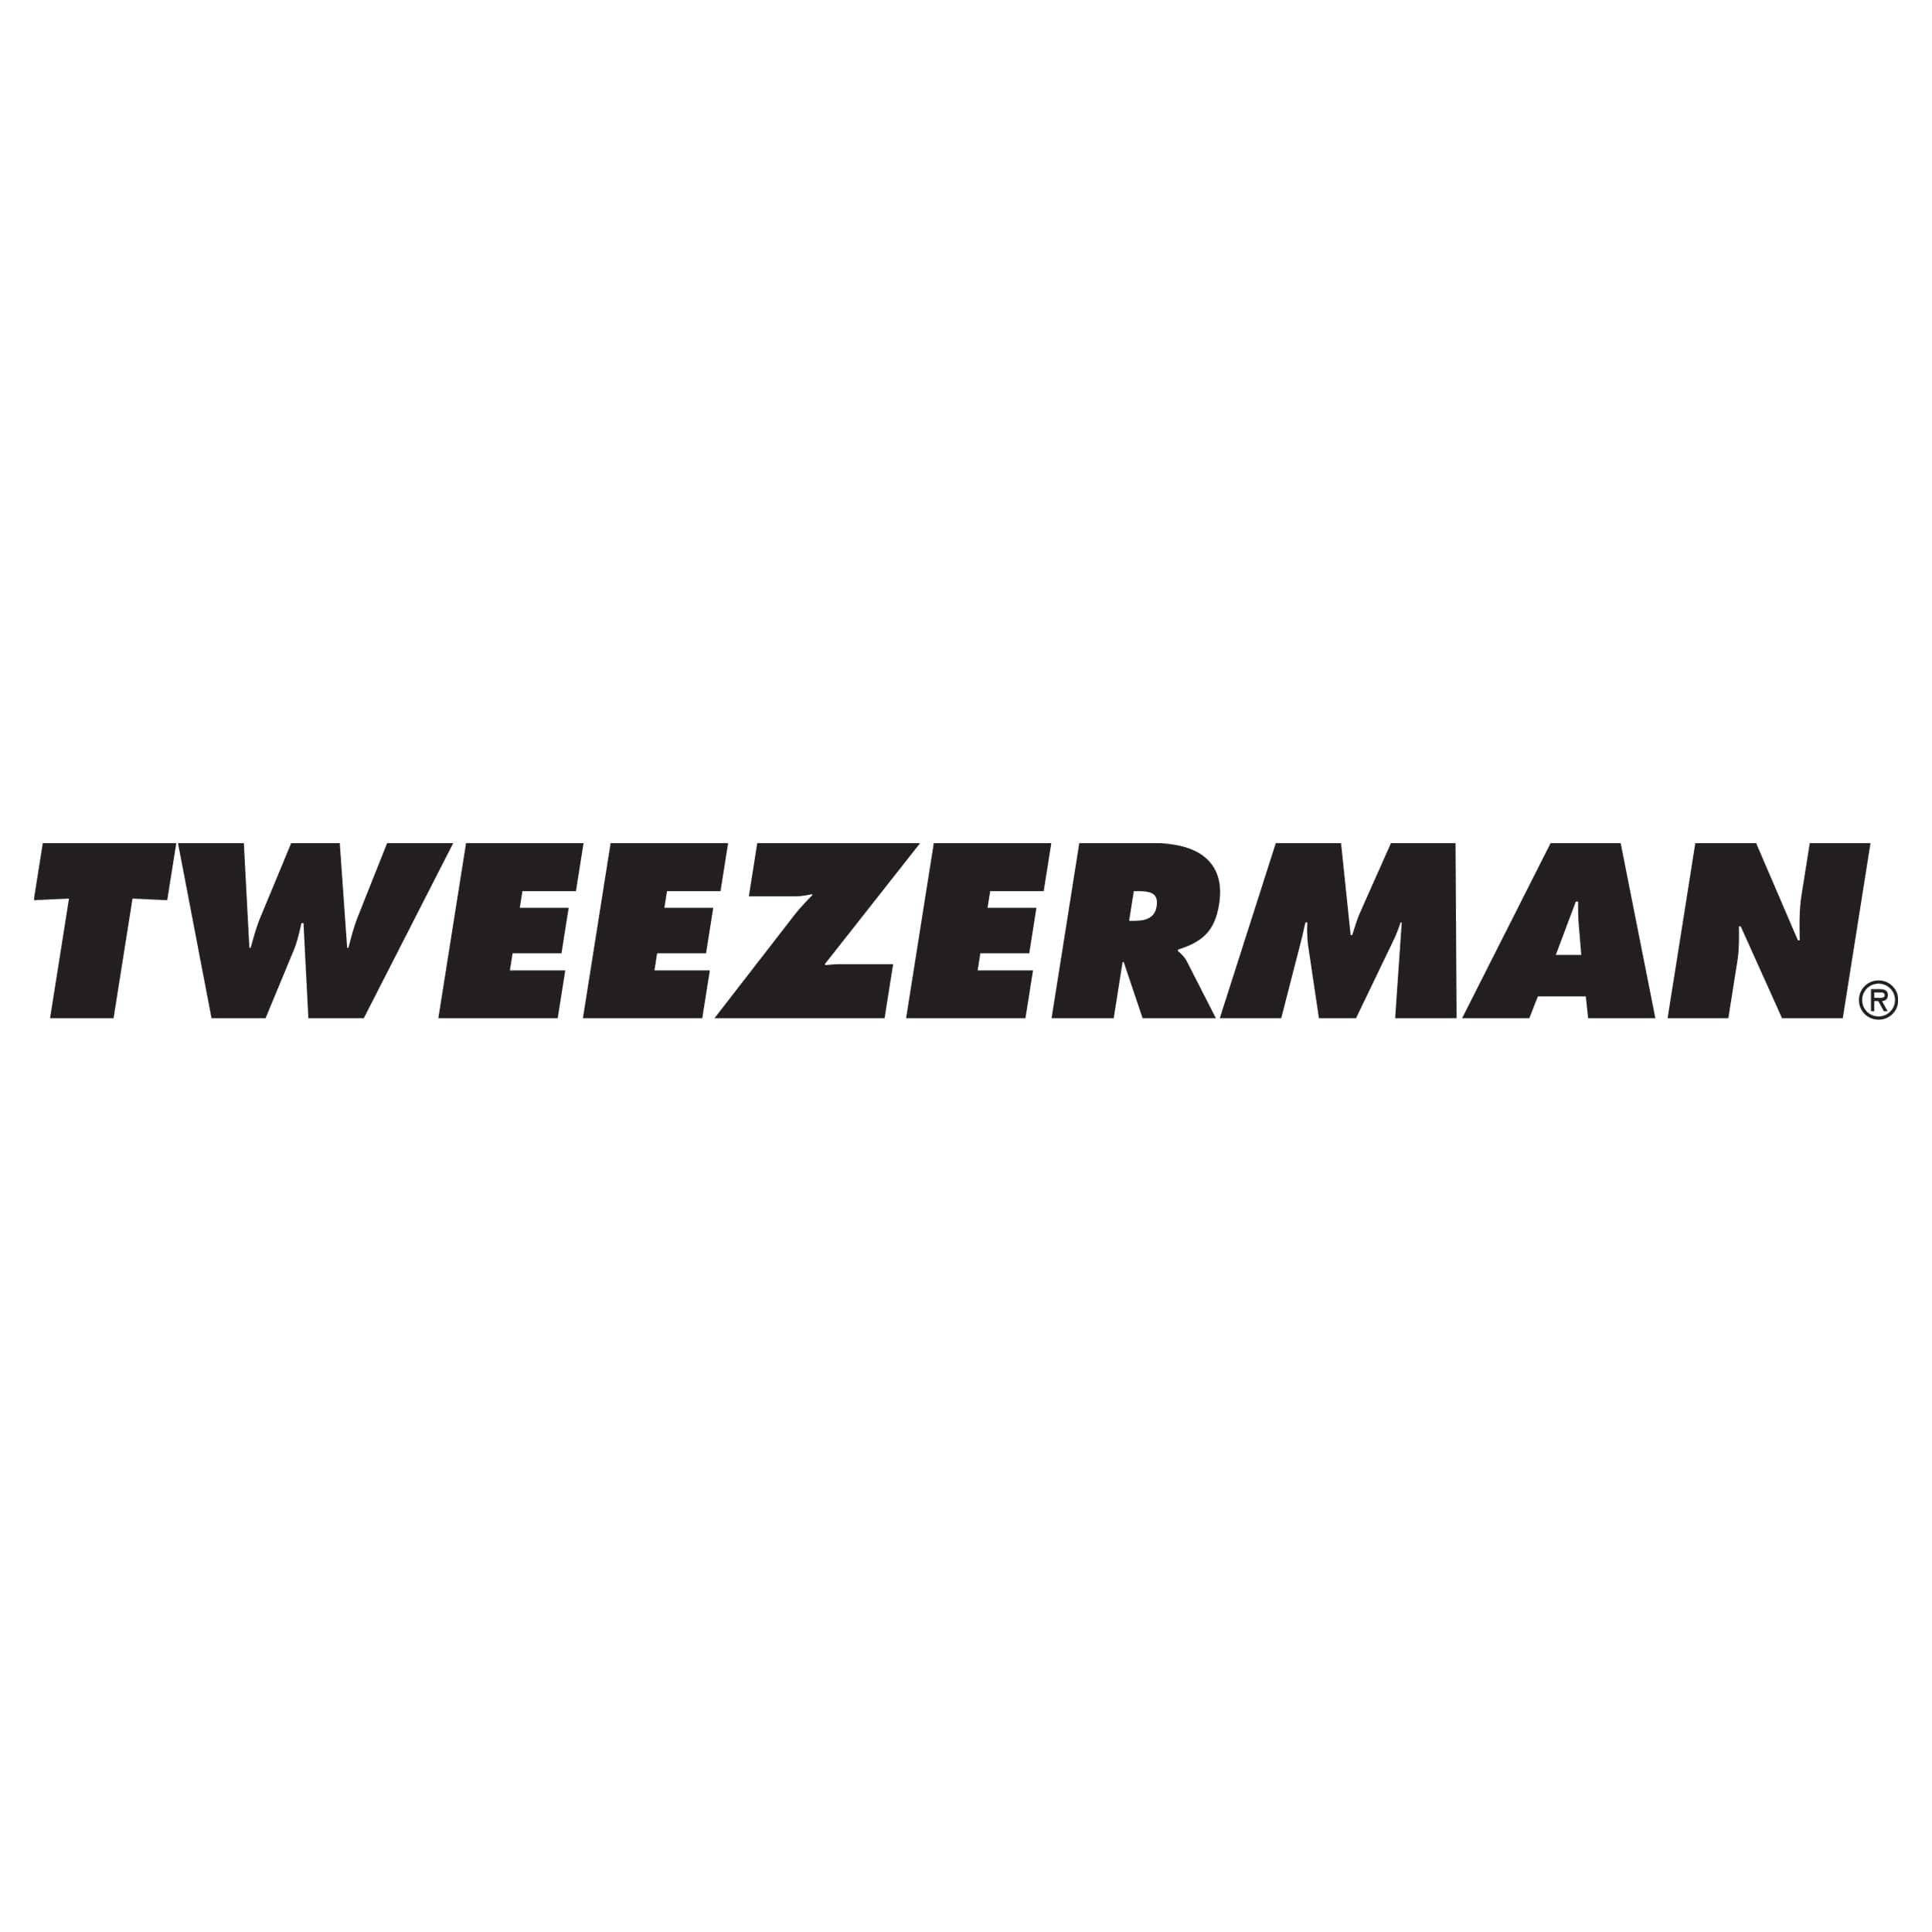 Product image of the Midnight Cheers Mini Slant Tweezer and silver hollygraphic case.